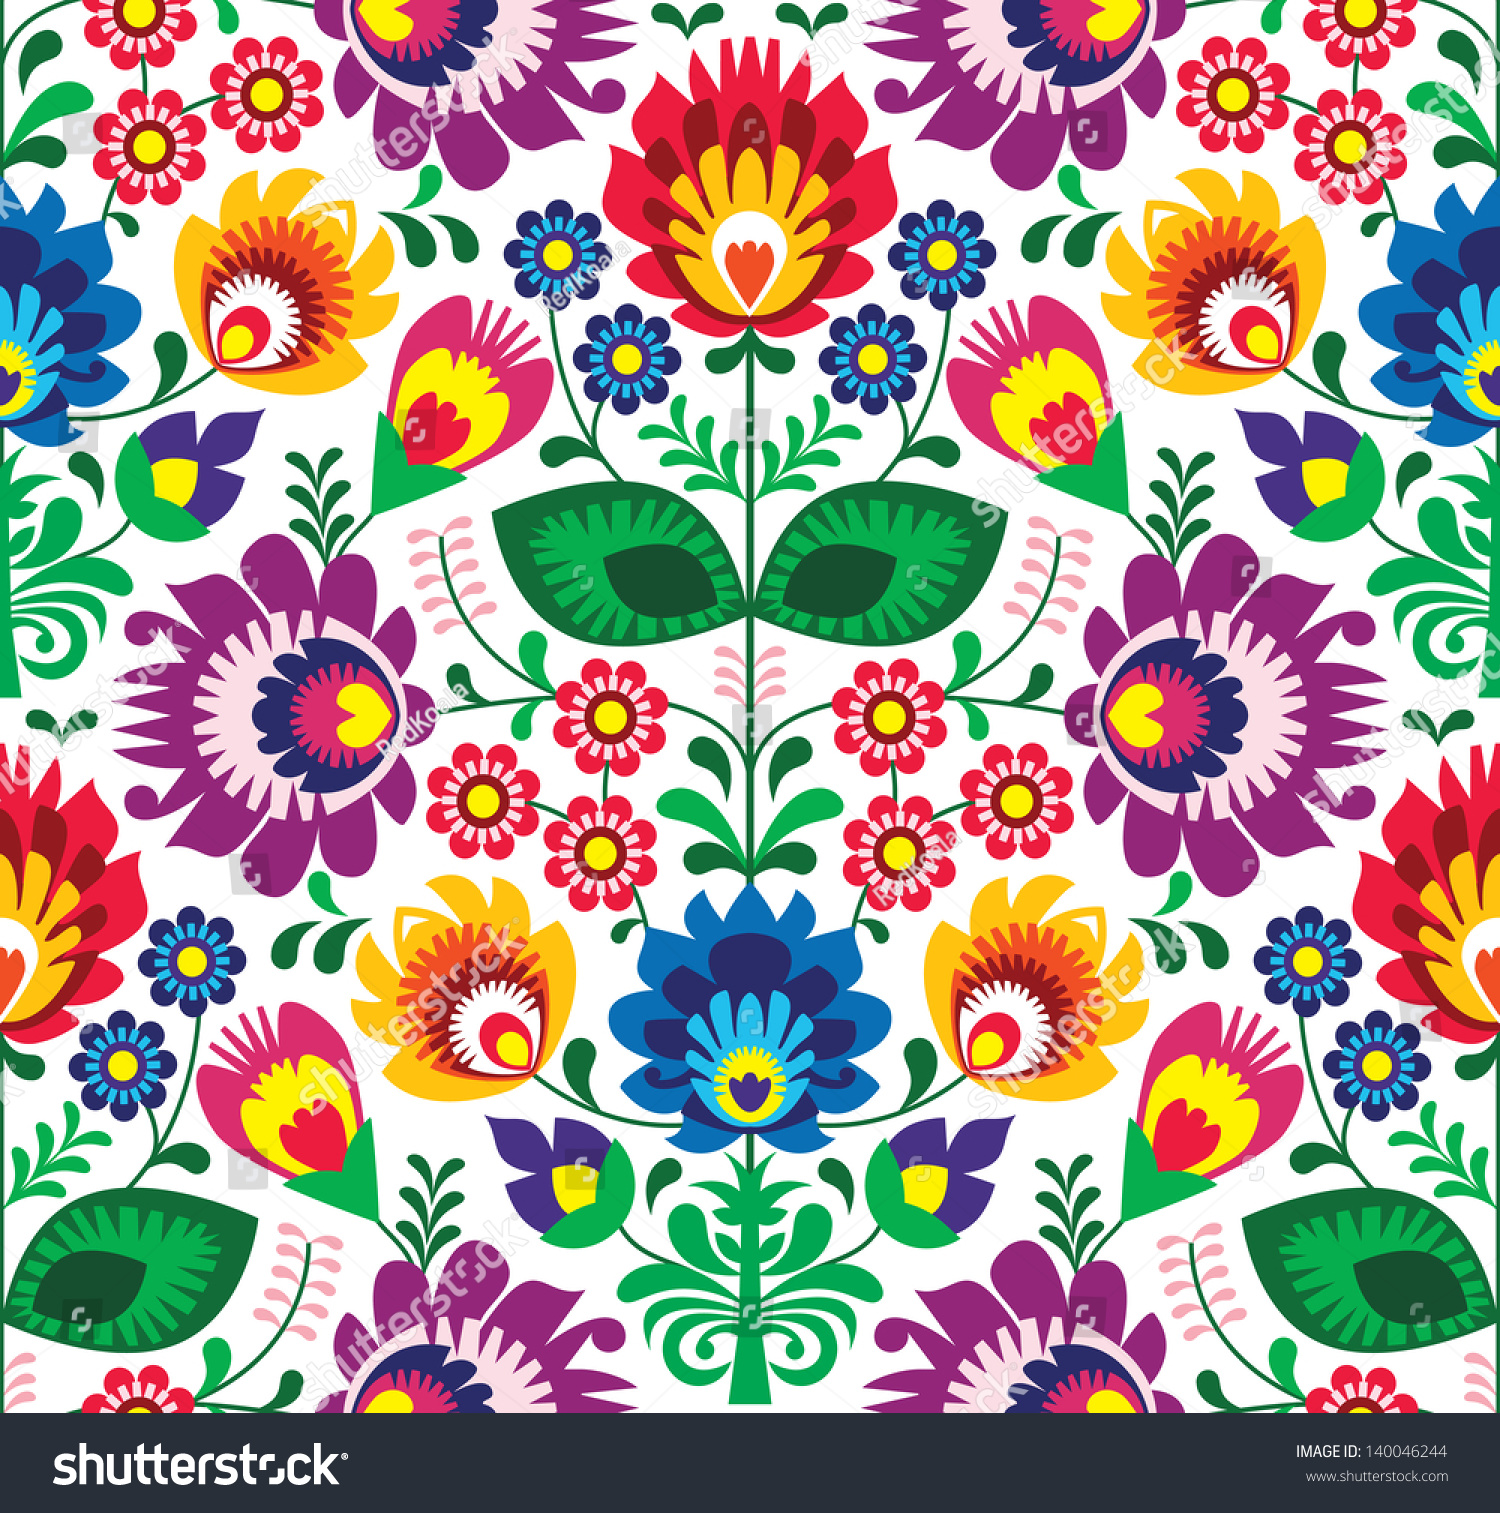 flower vase quilt pattern with Folk Art Flower Patterns Sdccfwiwe725y 7cfeowemnkwtamk8jgbzb3ayxl0fy9s on 3 D Quilting in addition Pattern Coloring Pages Quilt Pattern Coloring Pages further 367833 Blue Vase Argyle By Sherryann as well 322007442085914119 as well 325455510547021924.